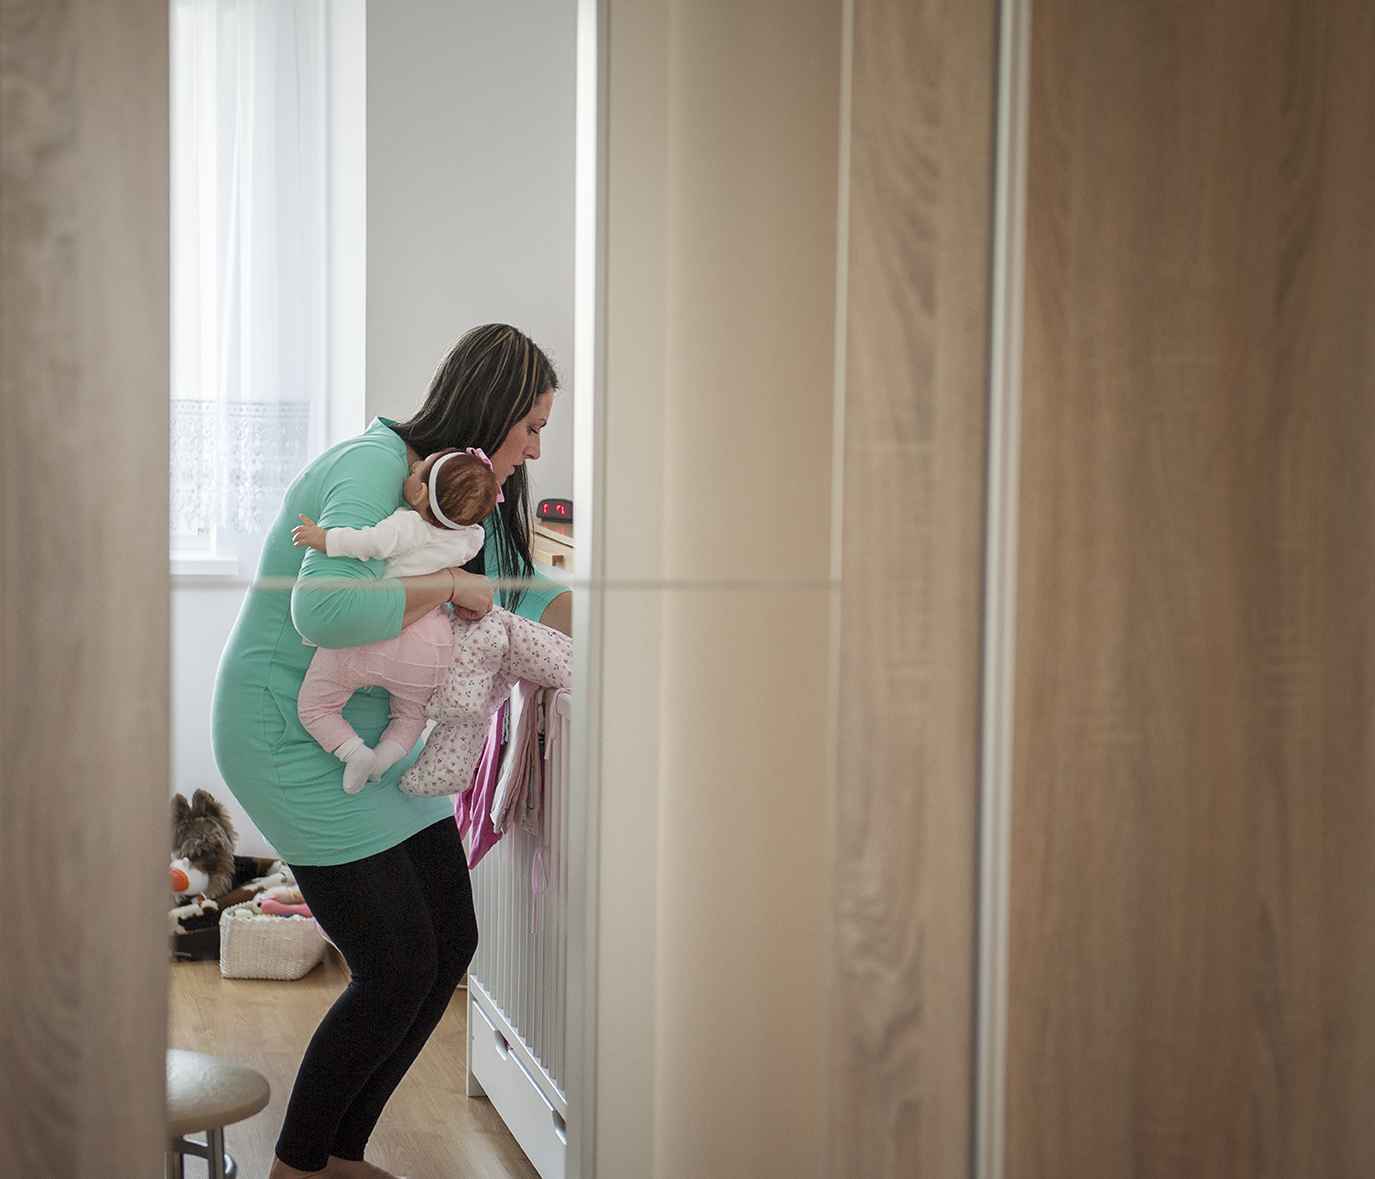 Magdalena is putting her doll to the crib. Lorcia was part of the family for seven years because Magdalena could not conceive. A year ago she gave birth to a baby boy. The doll now safely stored in a cupboard is no longer needed - yet fulfilled her therapeutic purpose